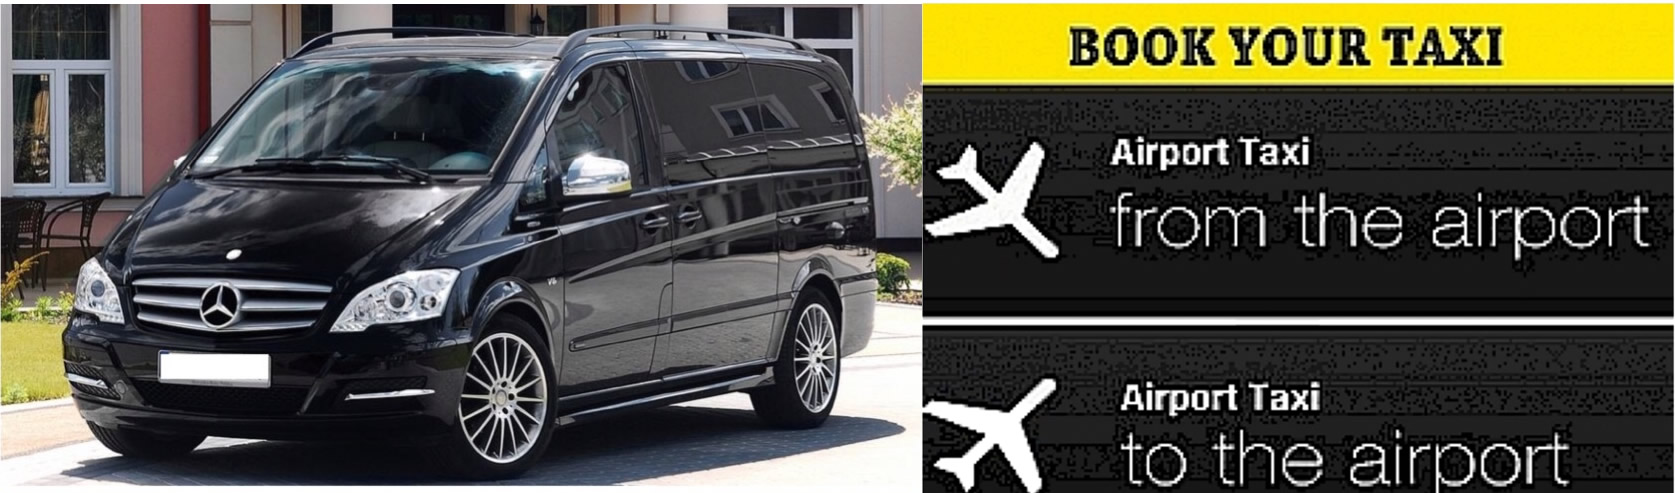 taxis costa brava 24 h airport transfers girona gro and barcelona bcn. Black Bedroom Furniture Sets. Home Design Ideas